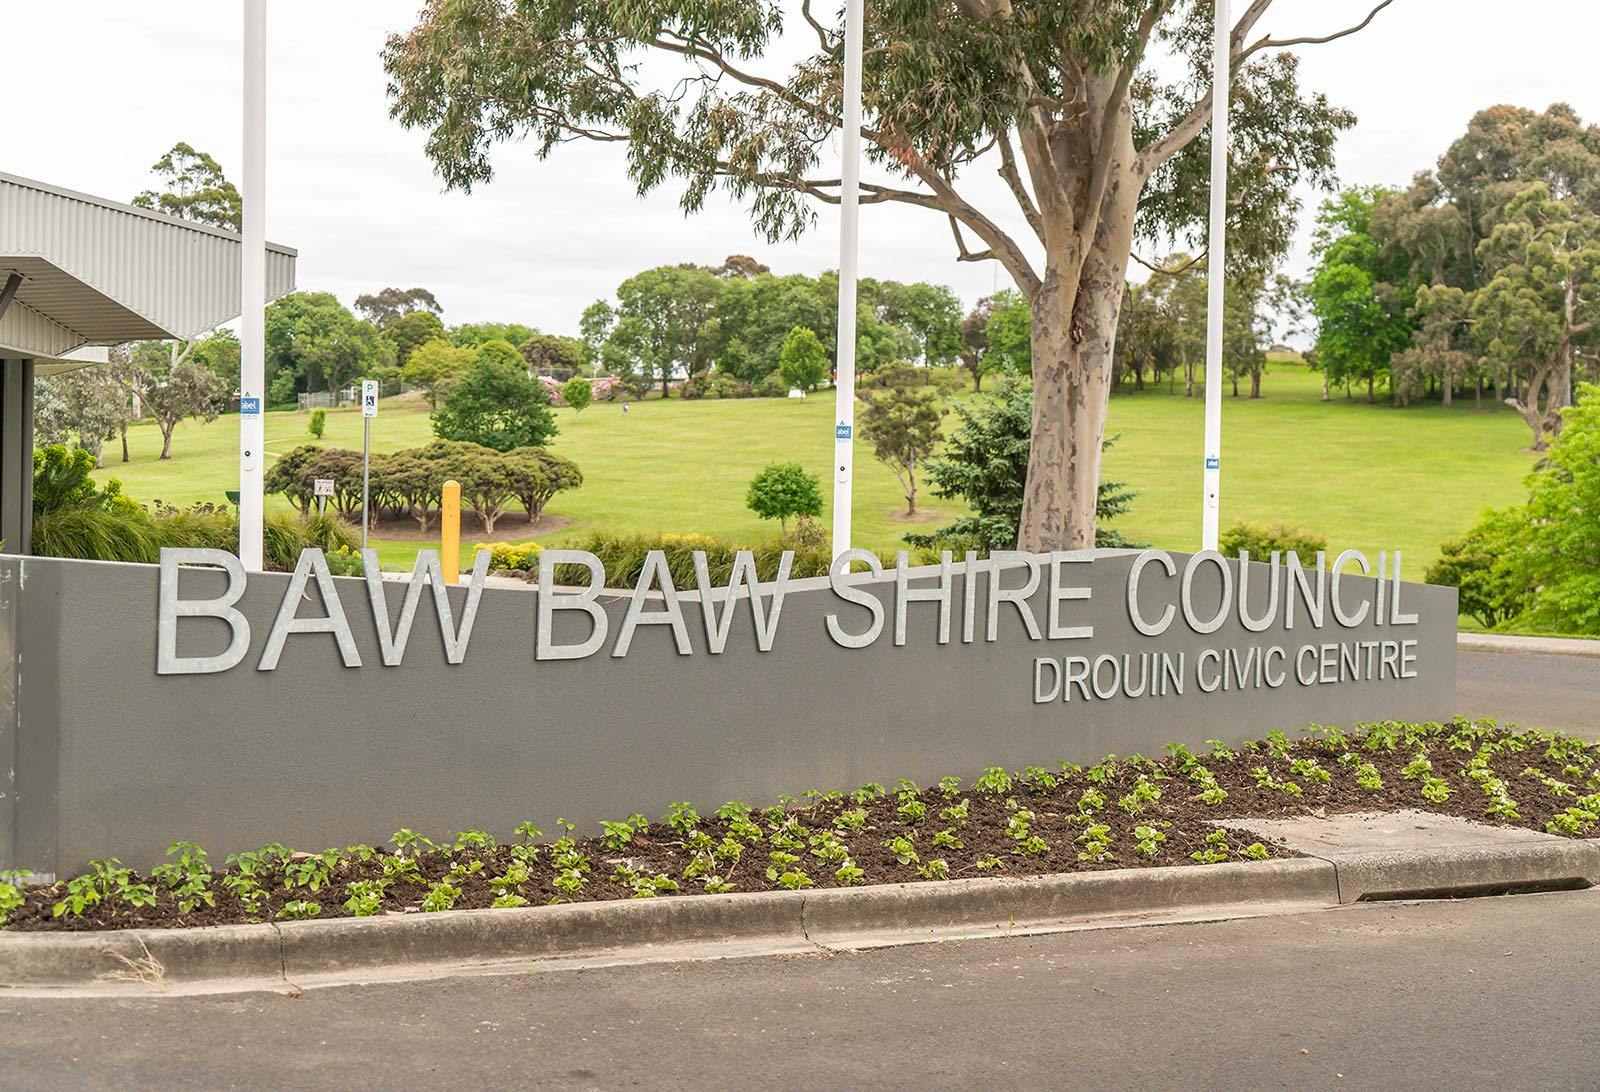 Image of outdoor sign with park and trees behind. Sign says Baw Baw Shire Council.